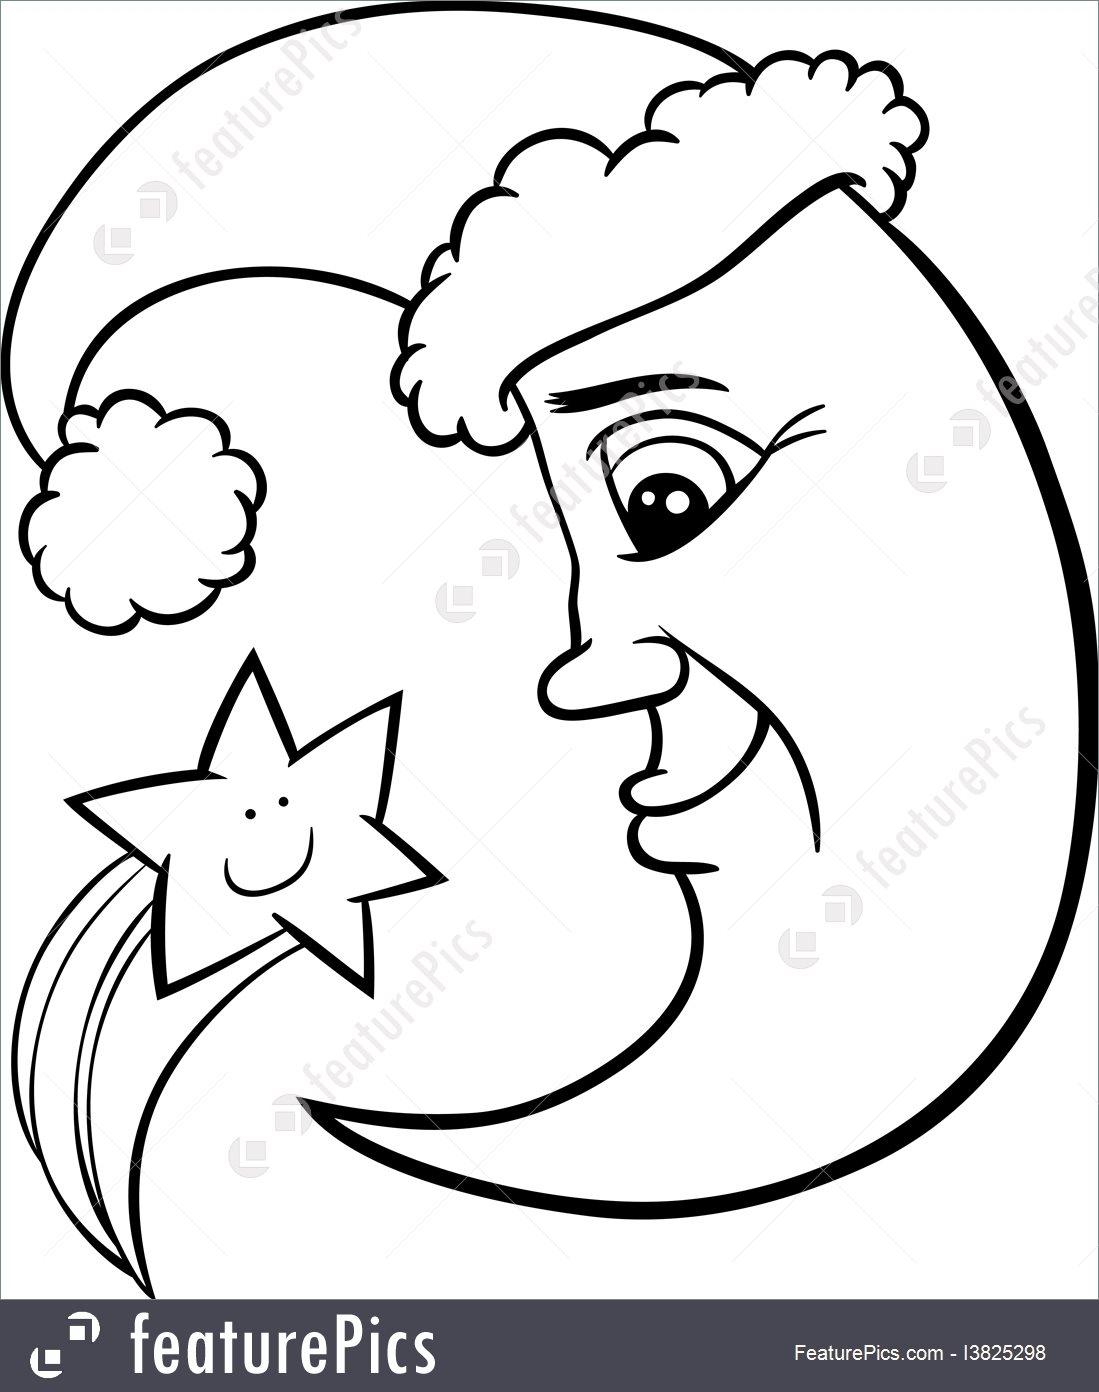 number 5 coloring page - Christmas Moon Star